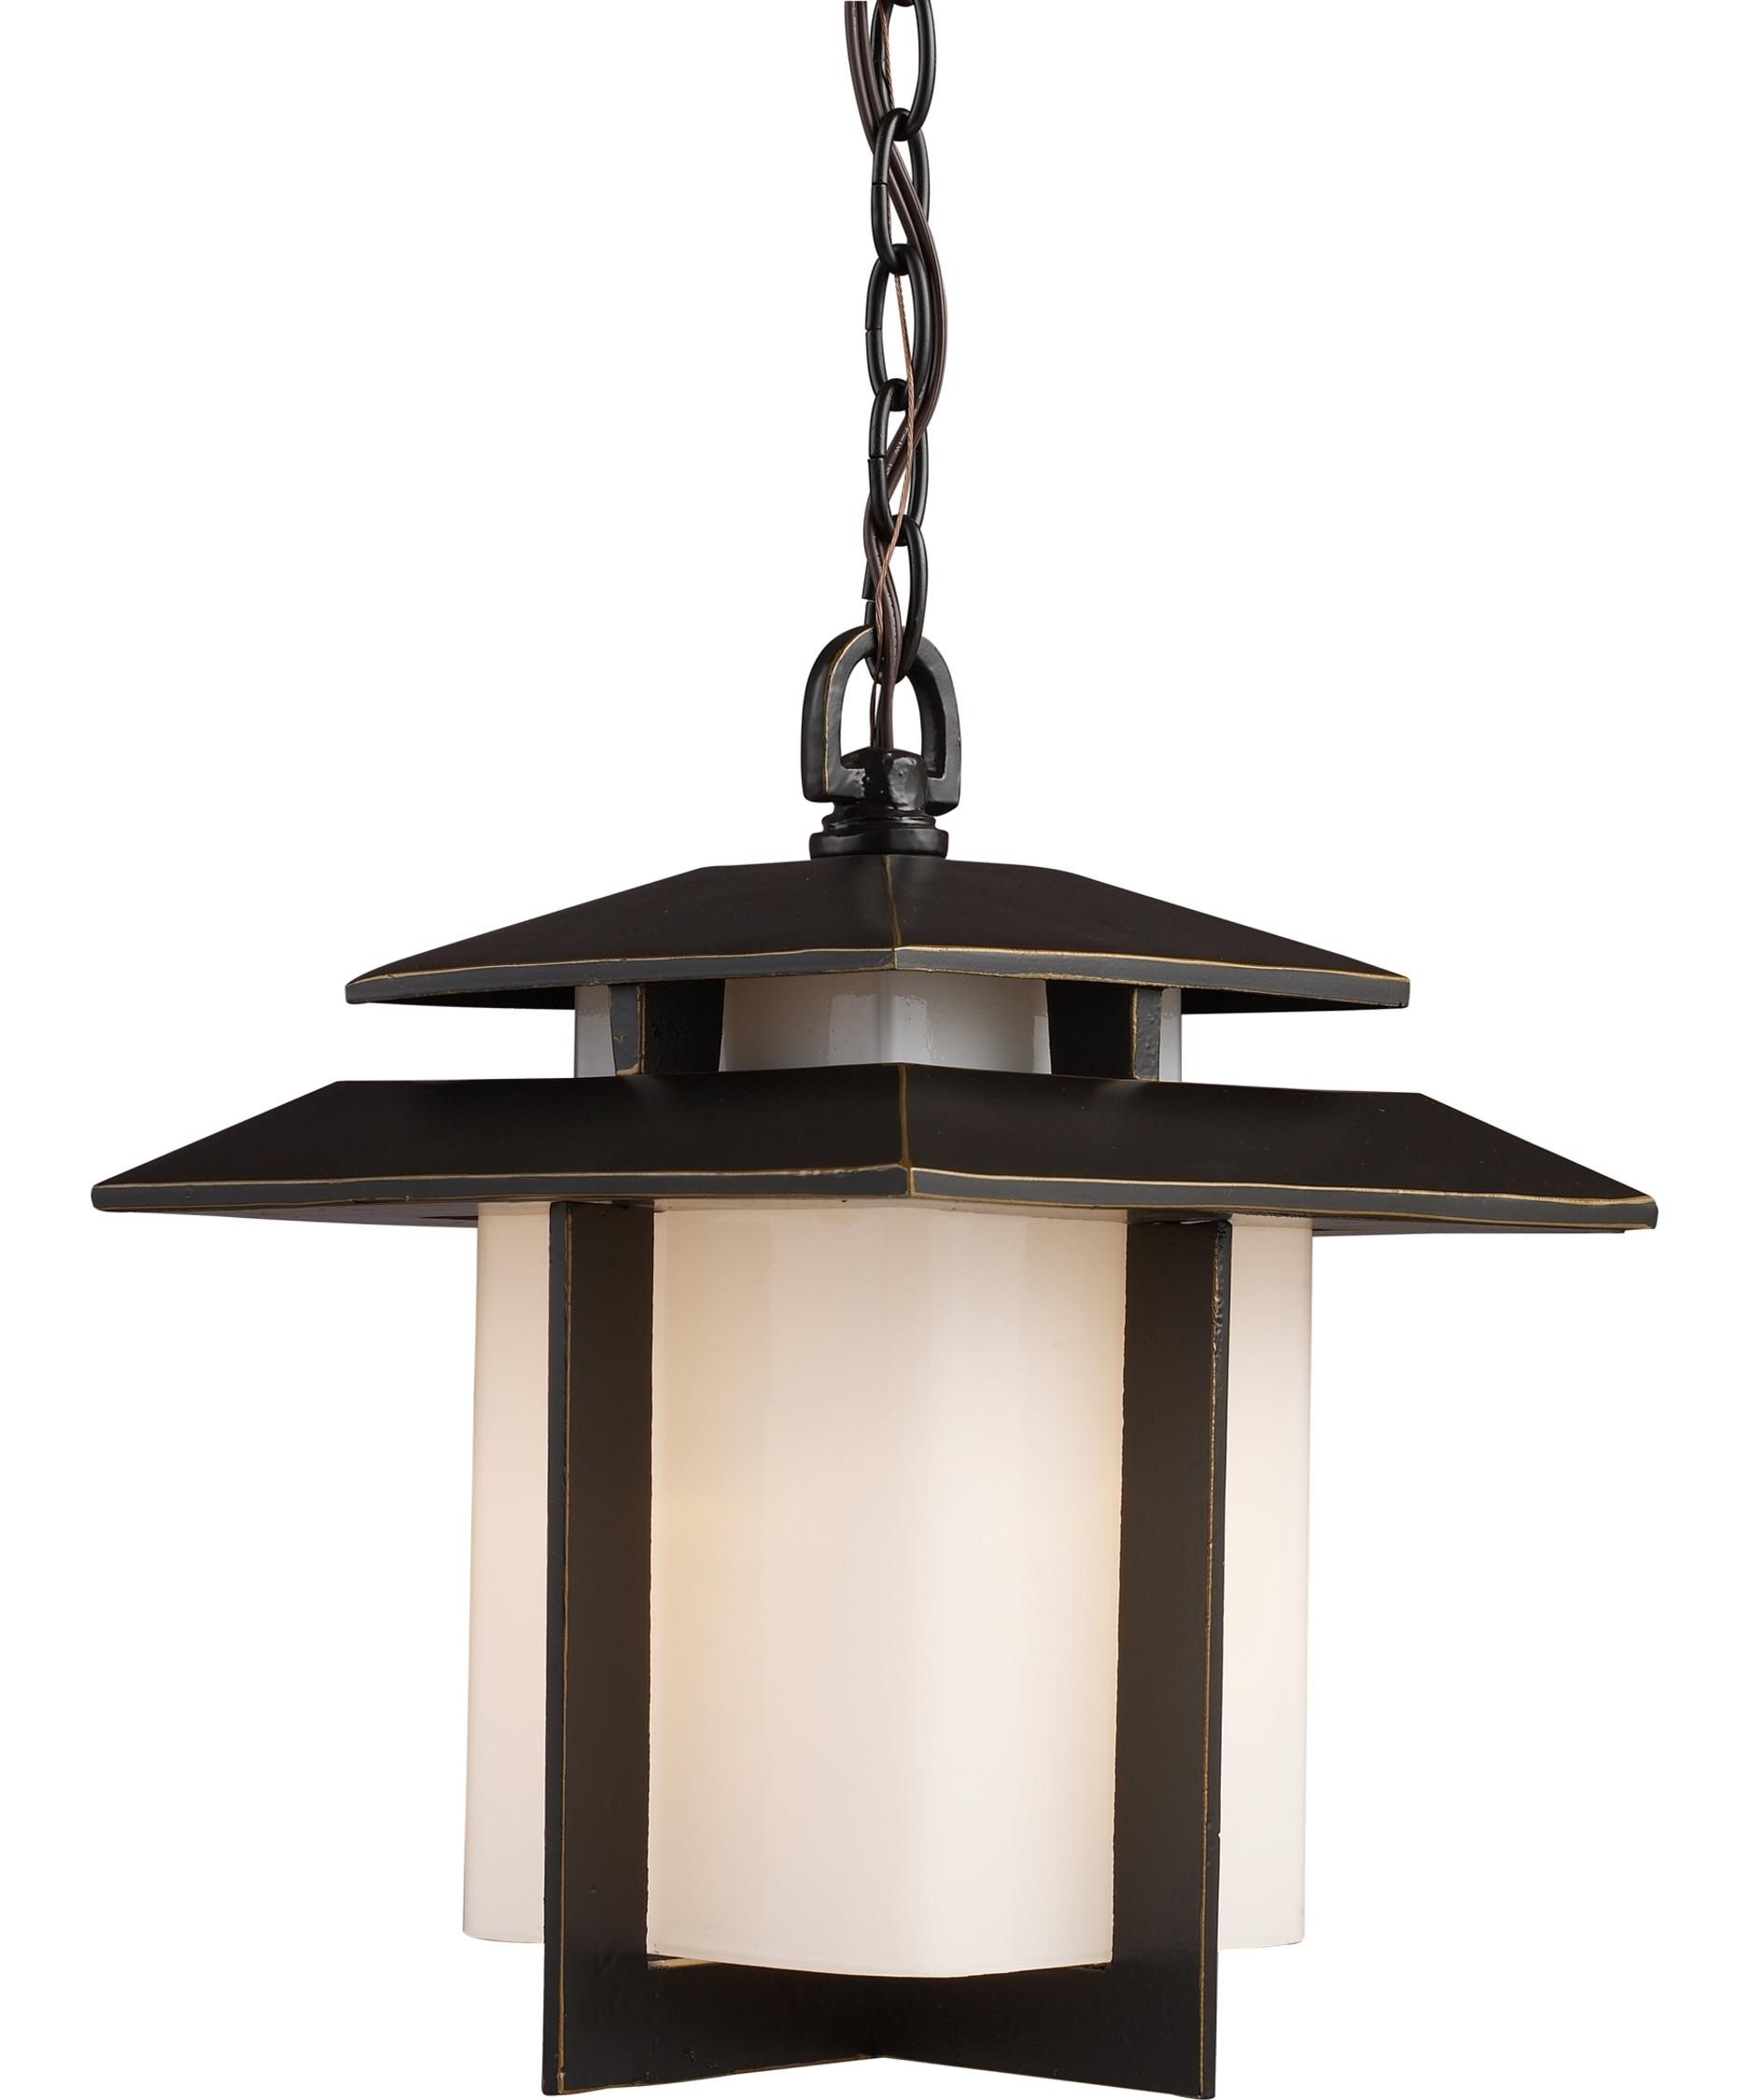 Elk Lighting 42172-1 Kanso 10 Inch Wide 1 Light Outdoor Hanging pertaining to Outdoor Hanging Japanese Lanterns (Image 7 of 20)